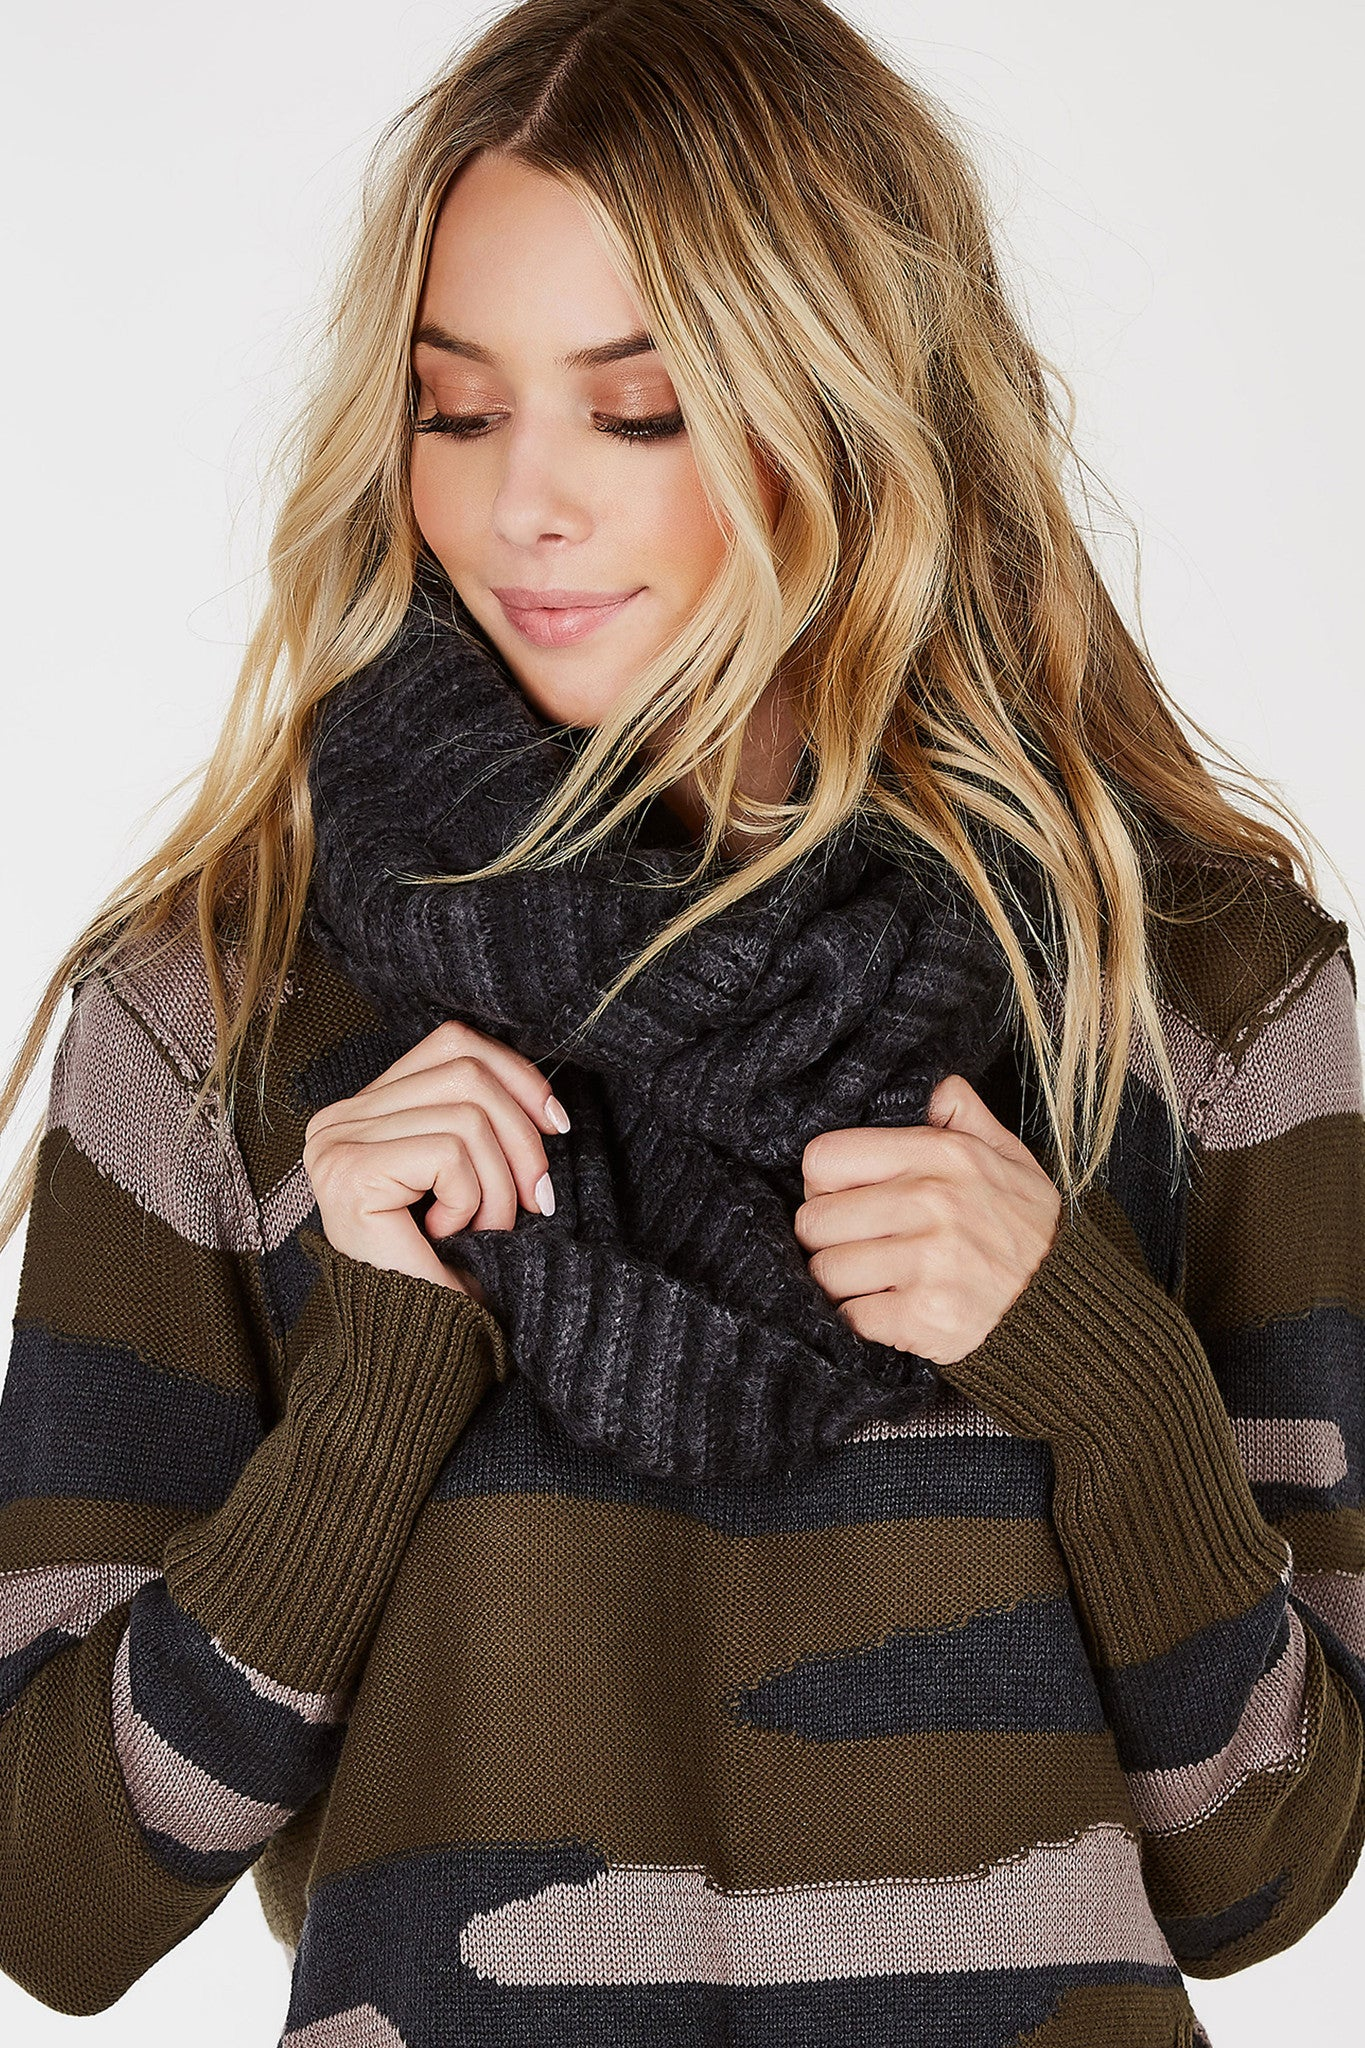 A soft, basic scarf to keep you cozy during the colder weather. Ribbed throughout with an infinity design to wrap around your neck multiple times. Casually hang it over a basic tee and denim for a chic Fall outfit.